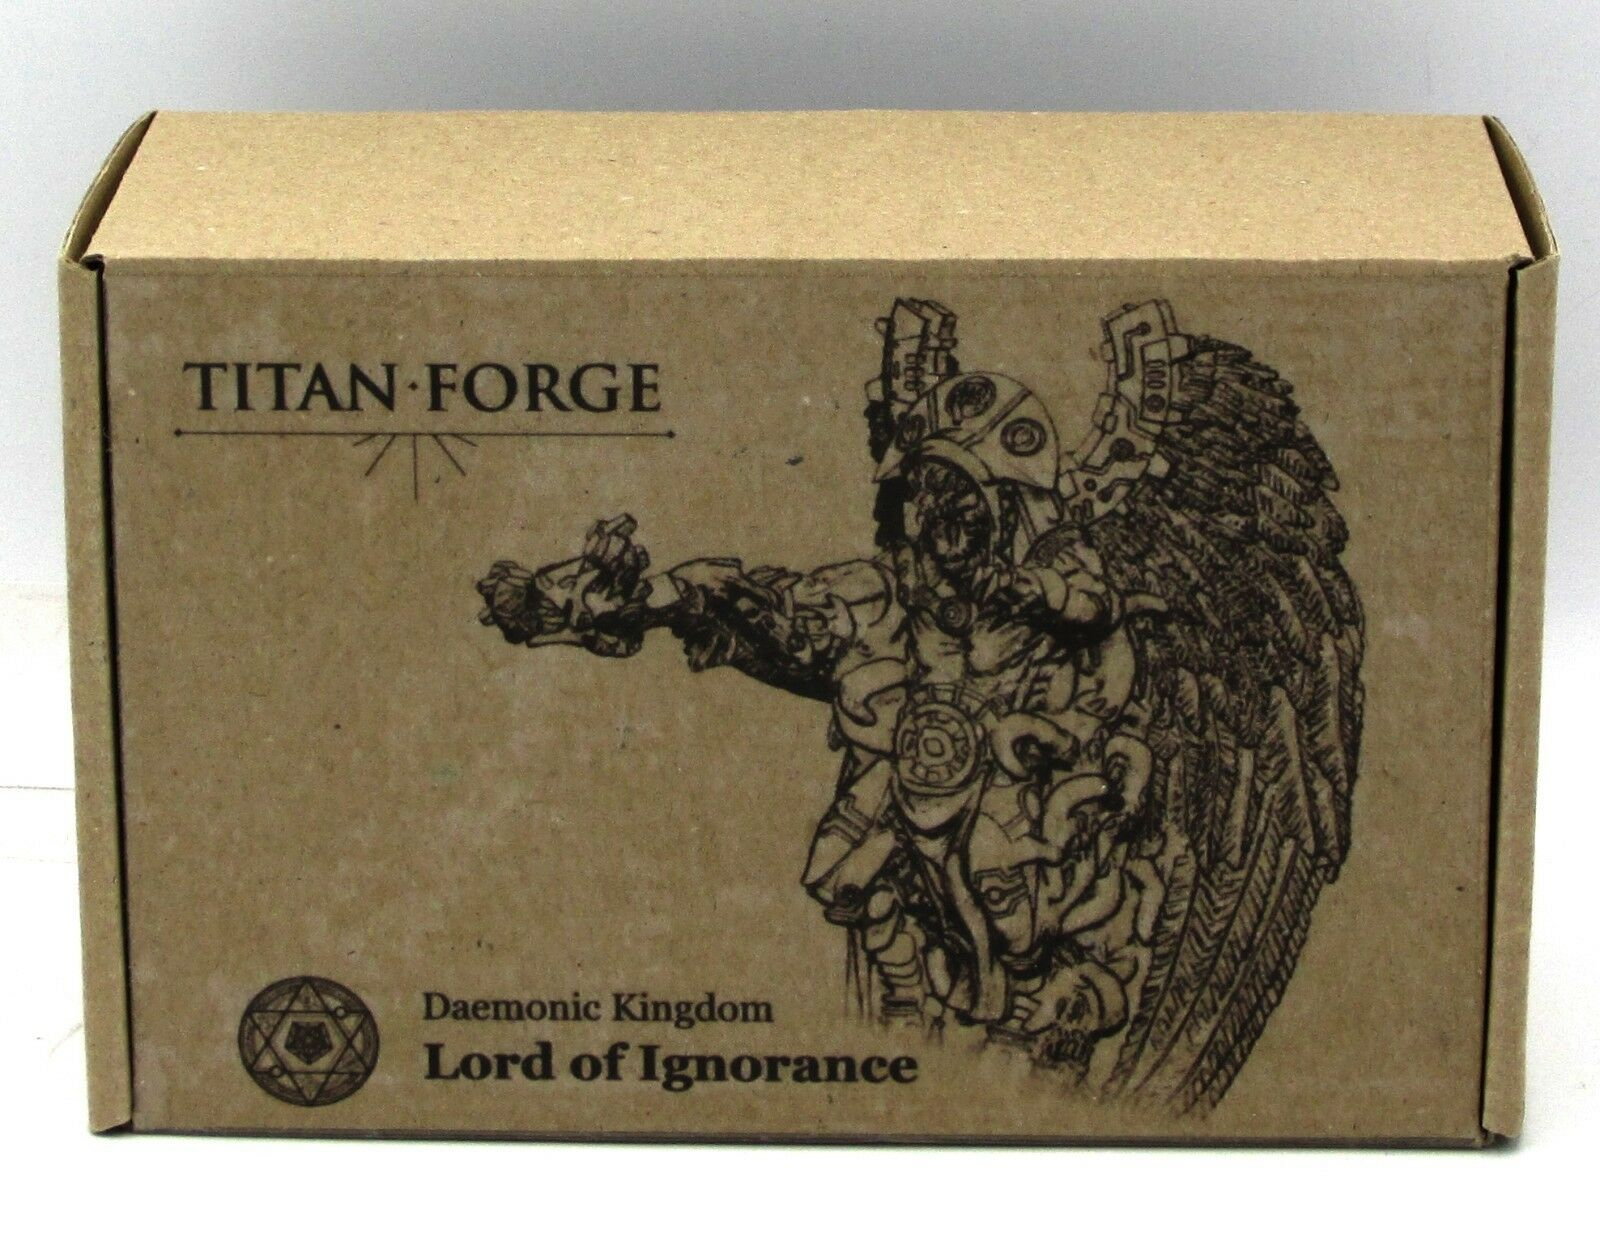 Titan Forge TFDK21 Lord of Ignorance (Daemonic Kingdom) Demon Sorcerer Champion